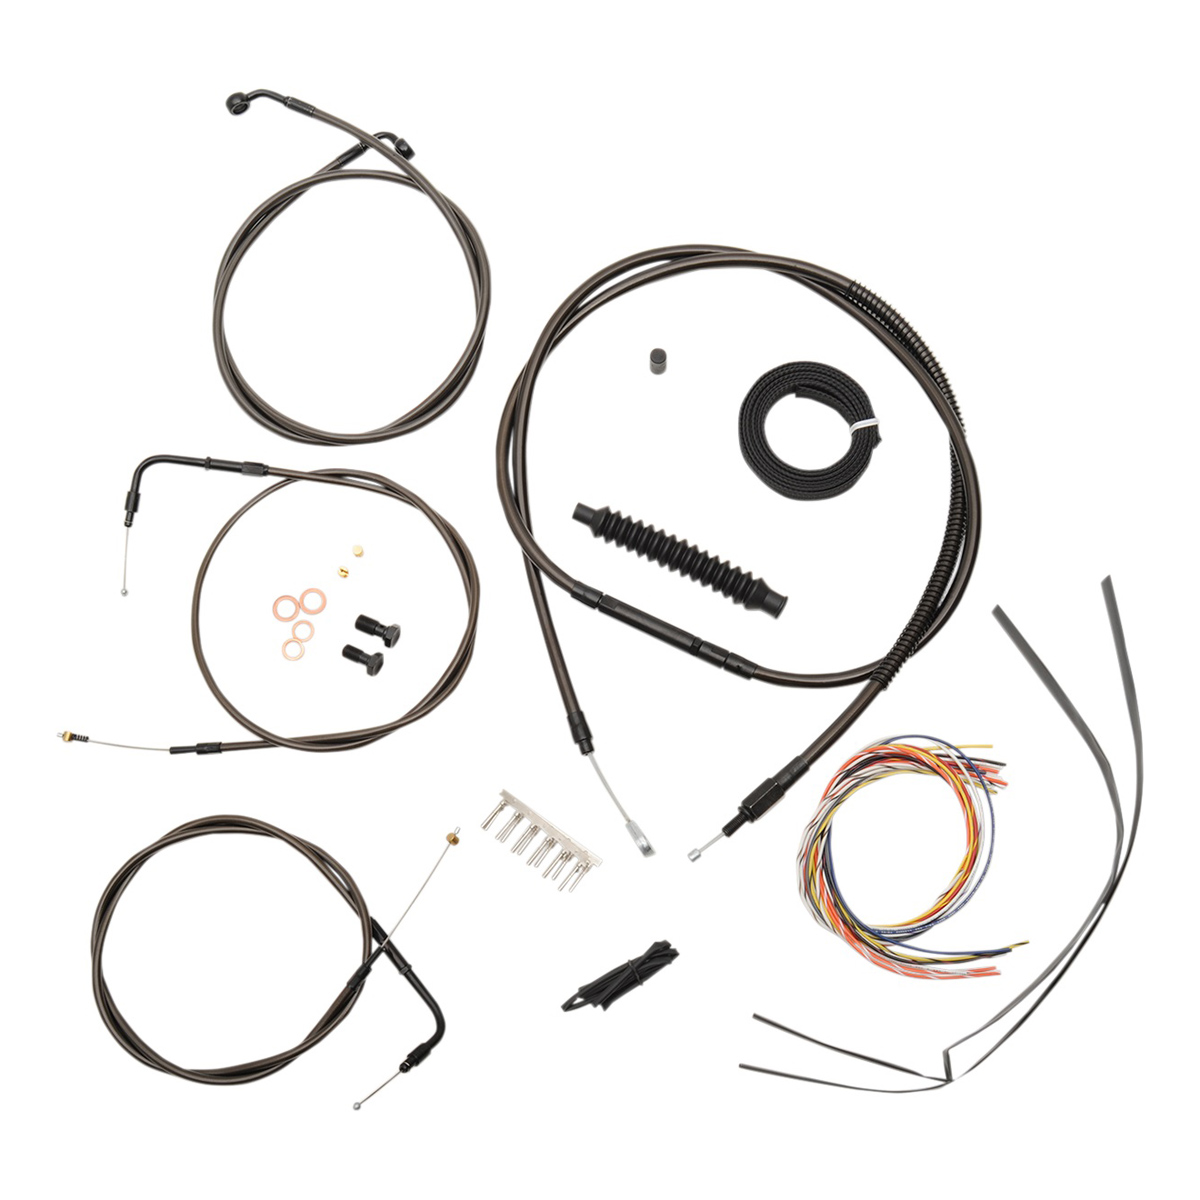 La Choppers Midnight Complete Cable Line Wiring Handlebar Kit For 15 17 Bars On Models Without